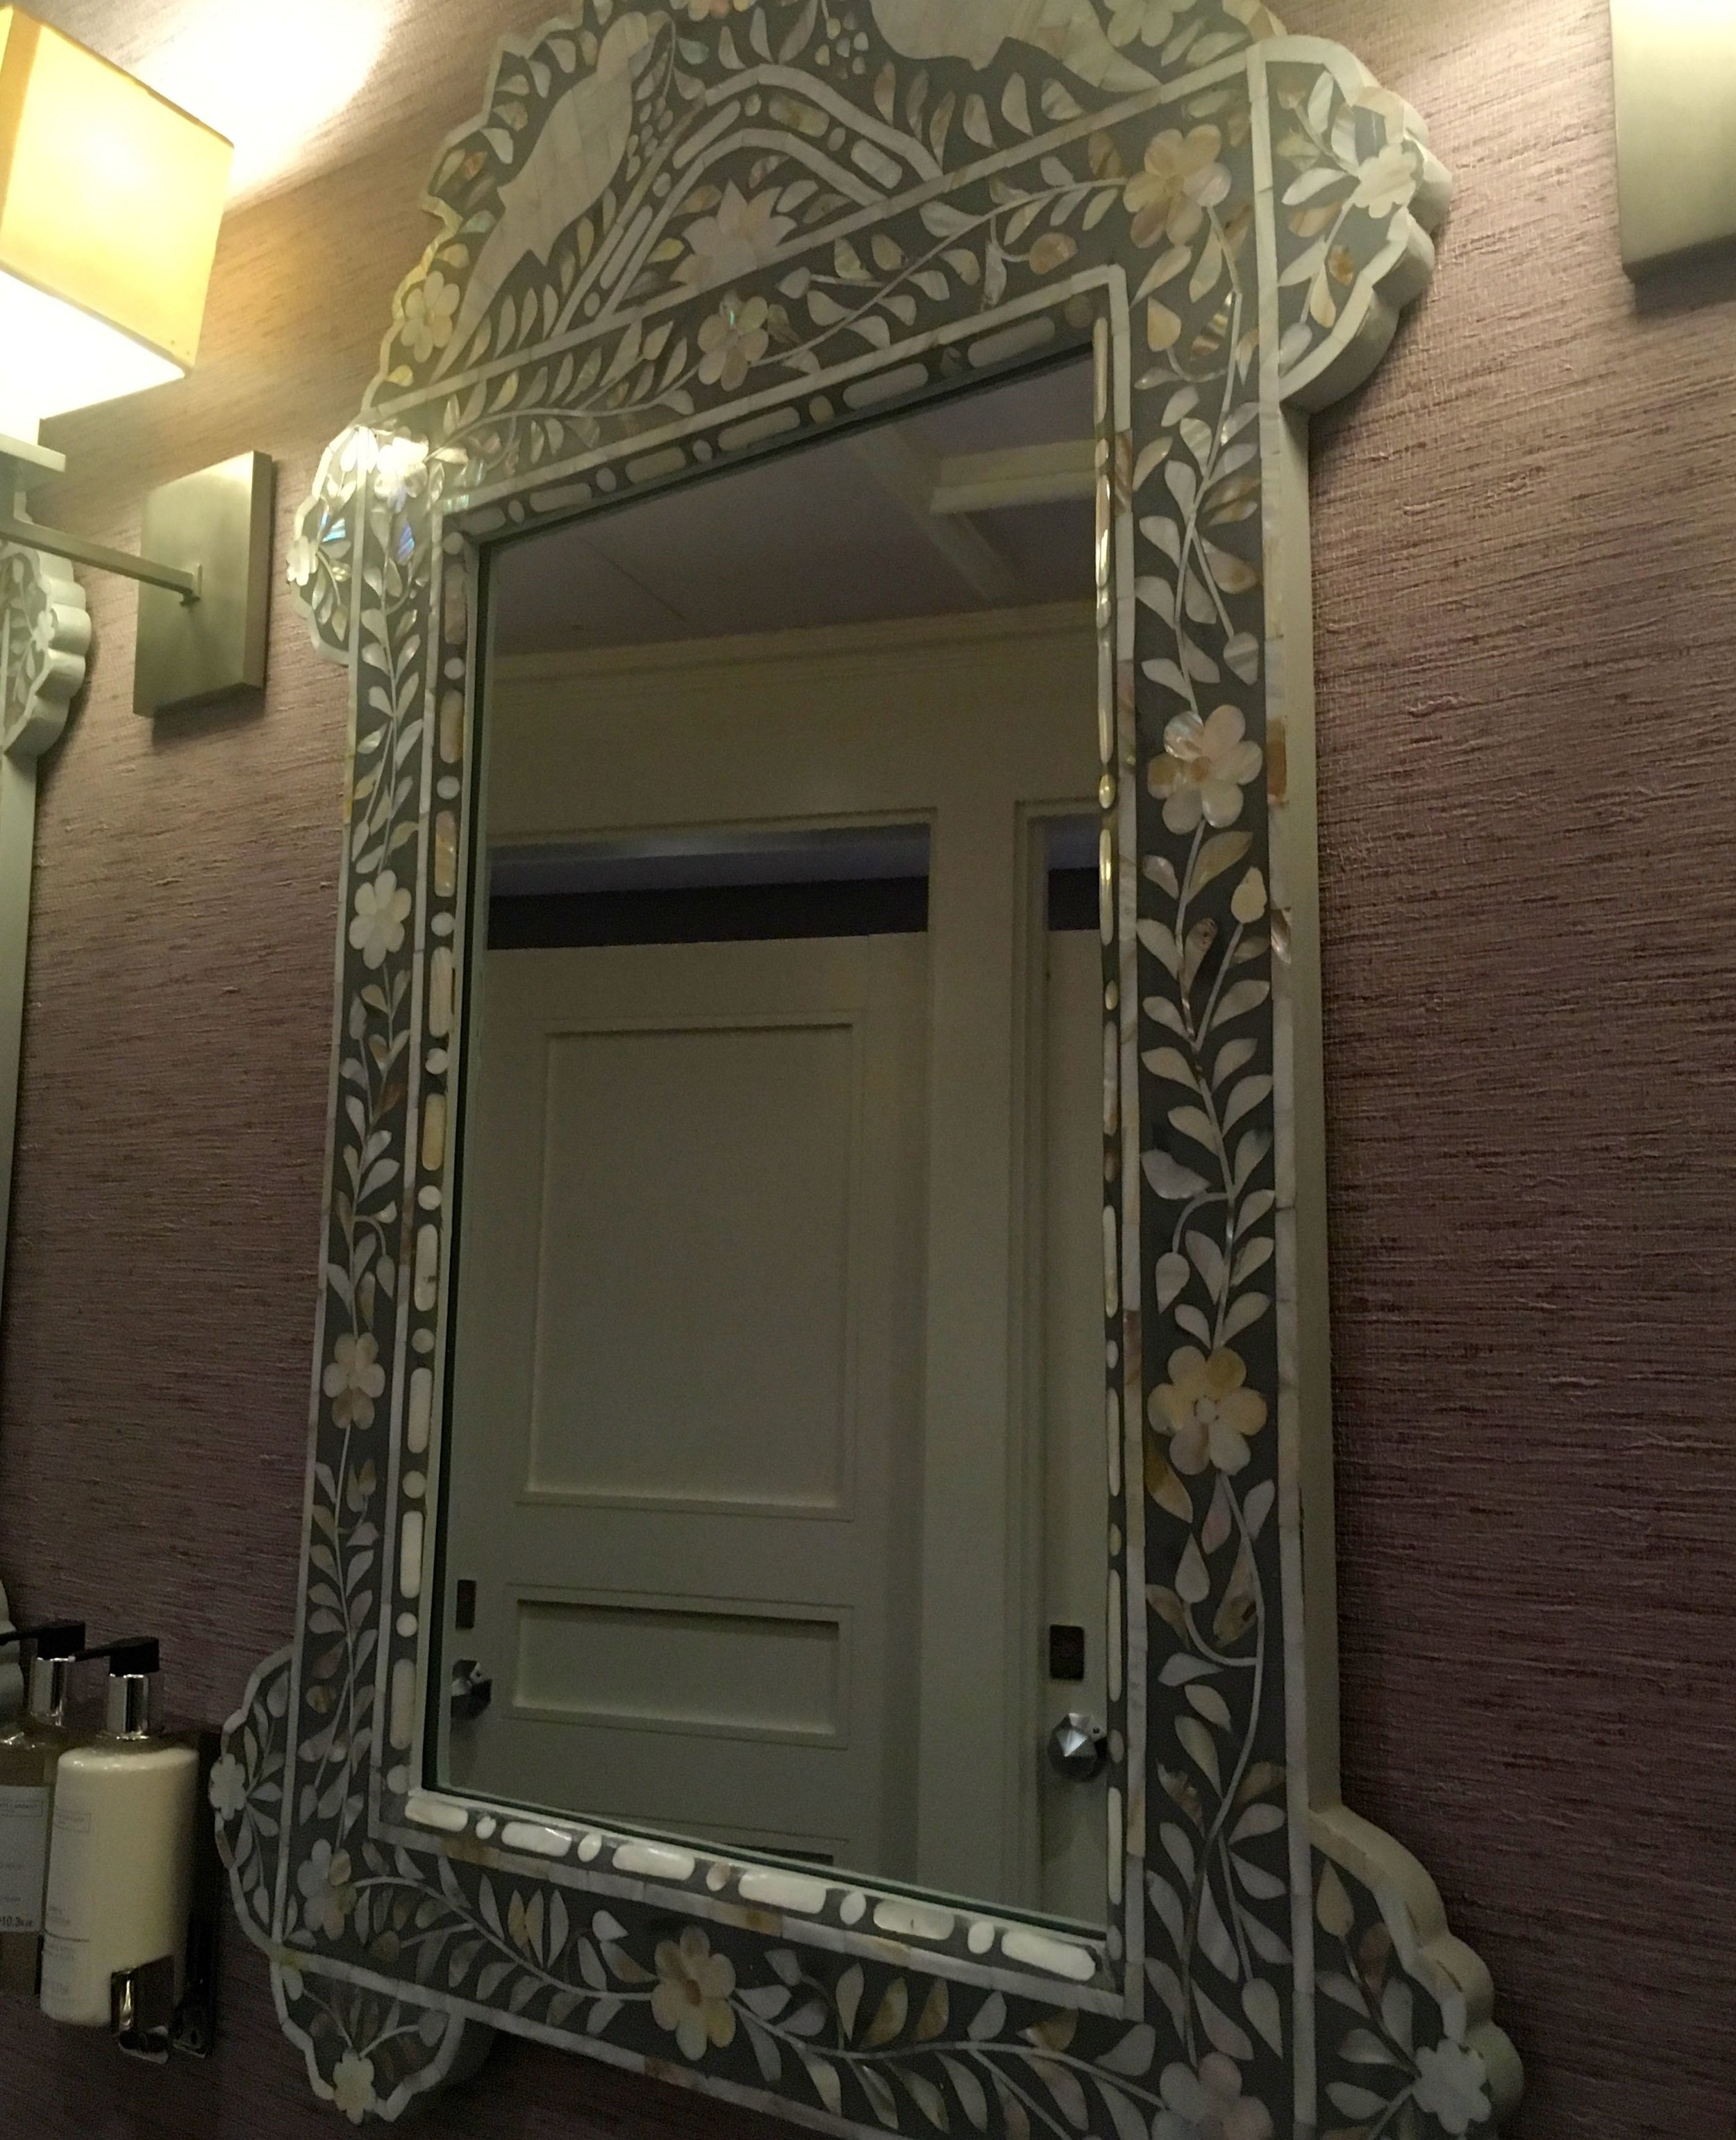 mosiac mirrors at St Ermin's hotel in London